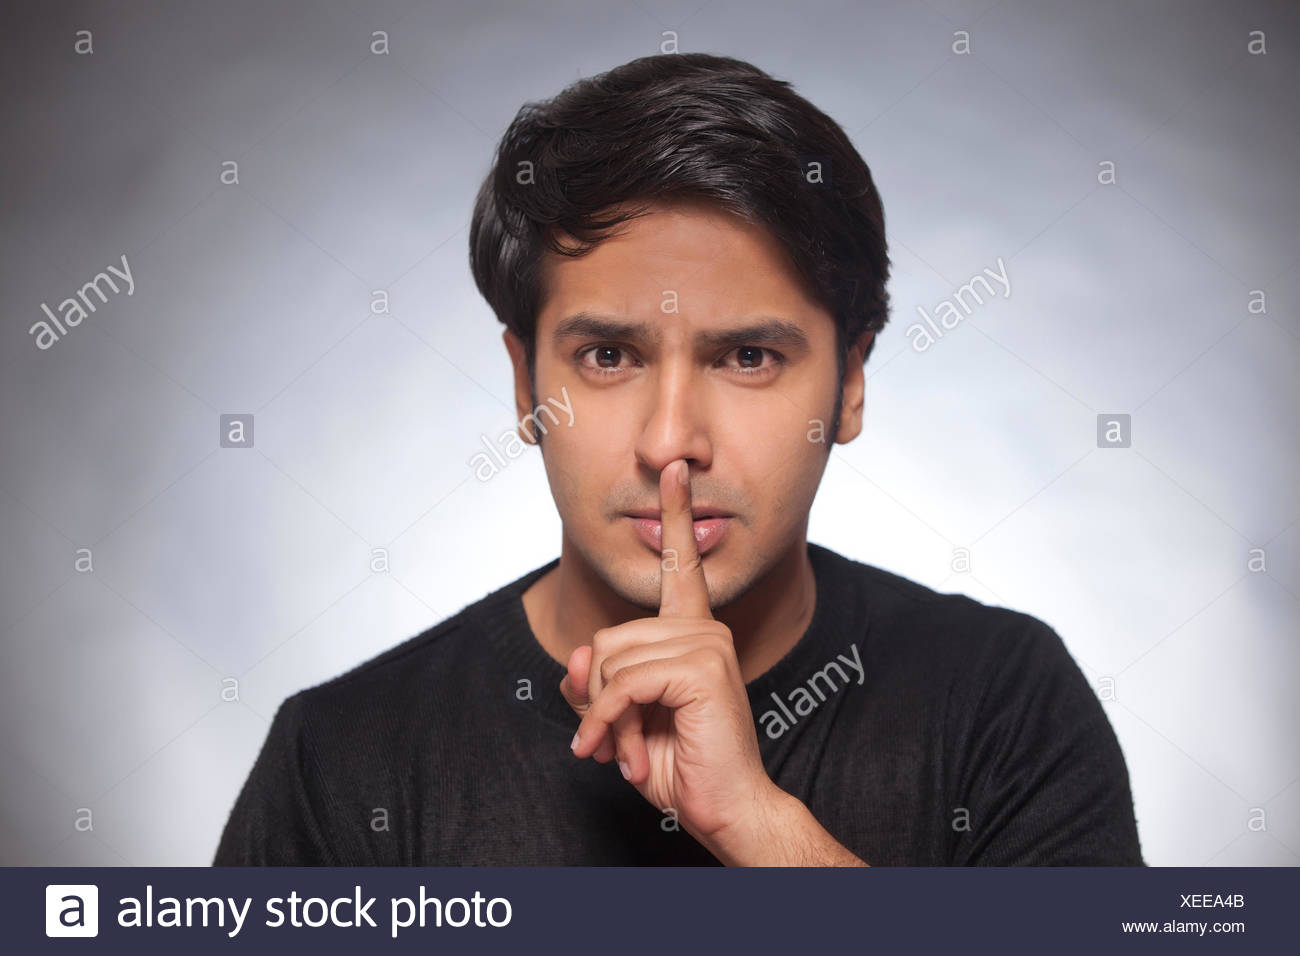 Portrait of a young man with his finger on lips - Stock Image